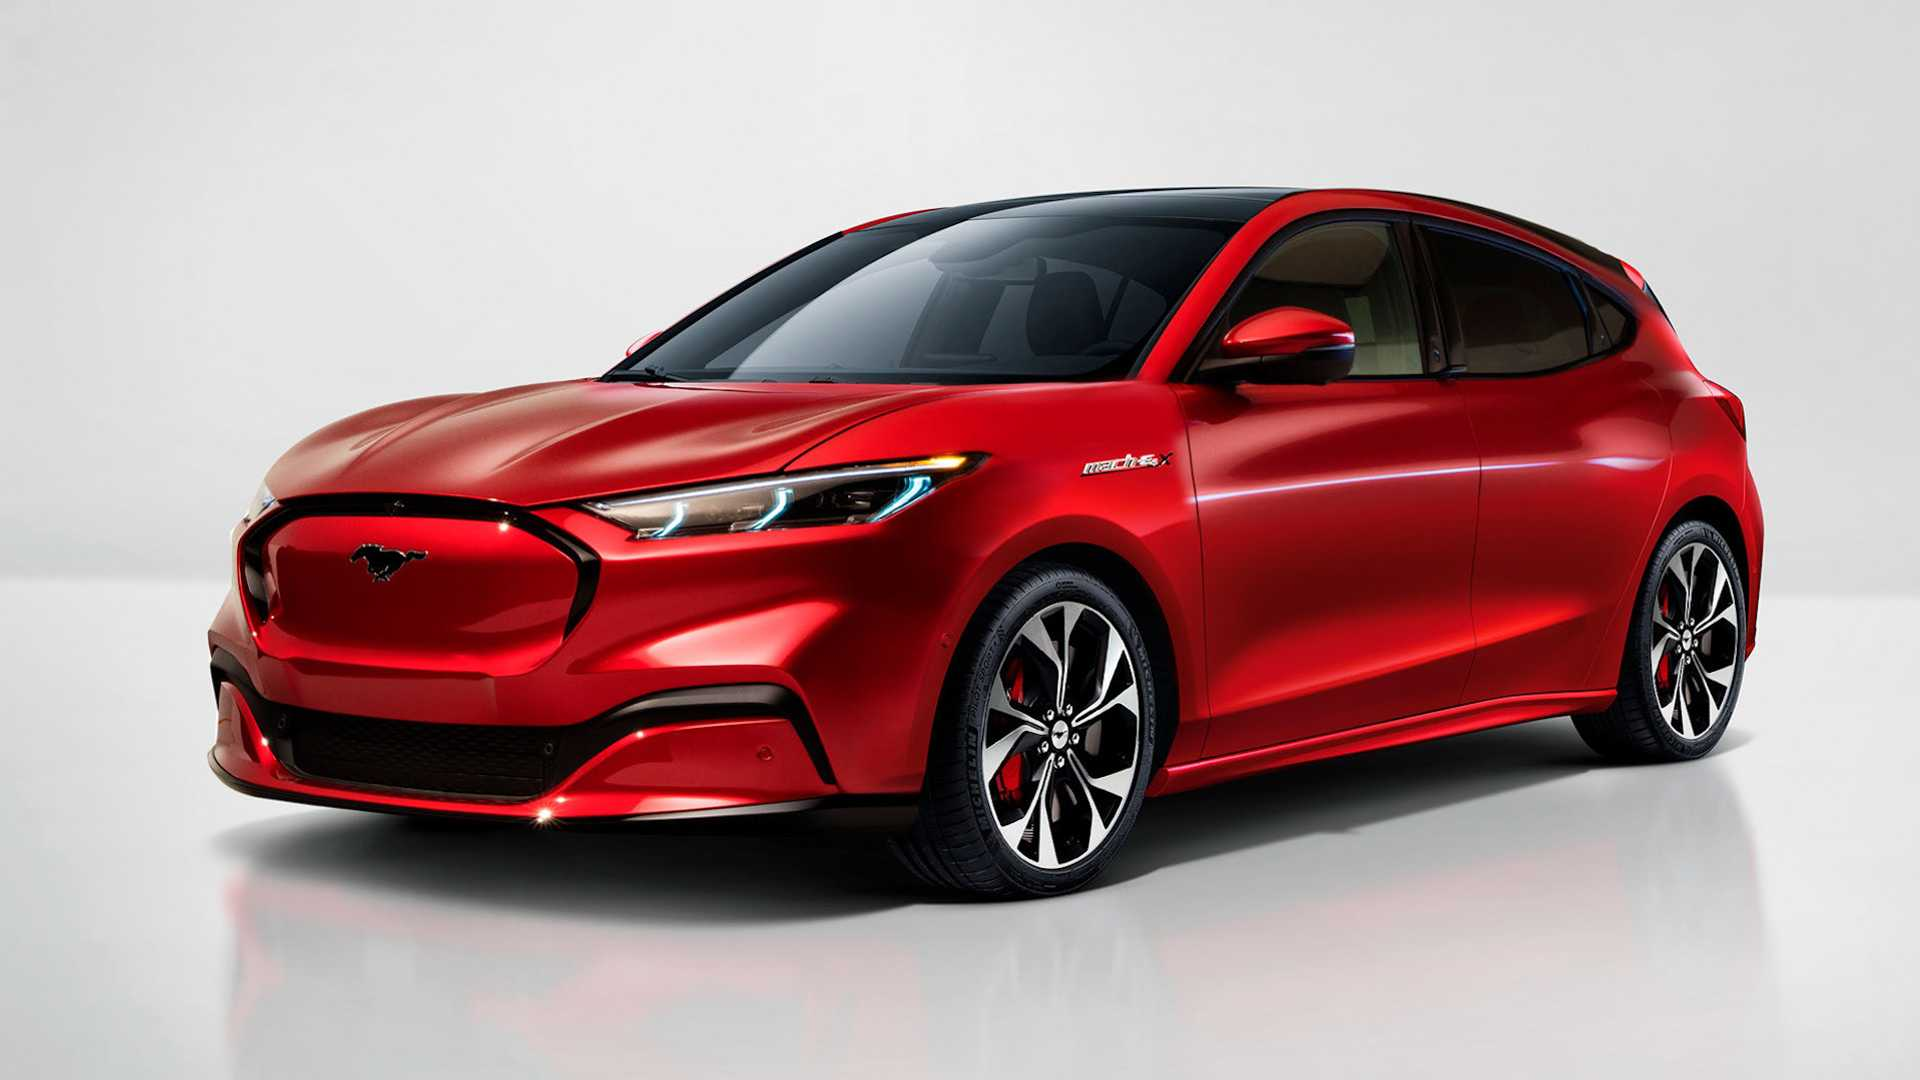 Ford Mustang Mach-E Hatchback Rendering Will Upset Just About Everyone